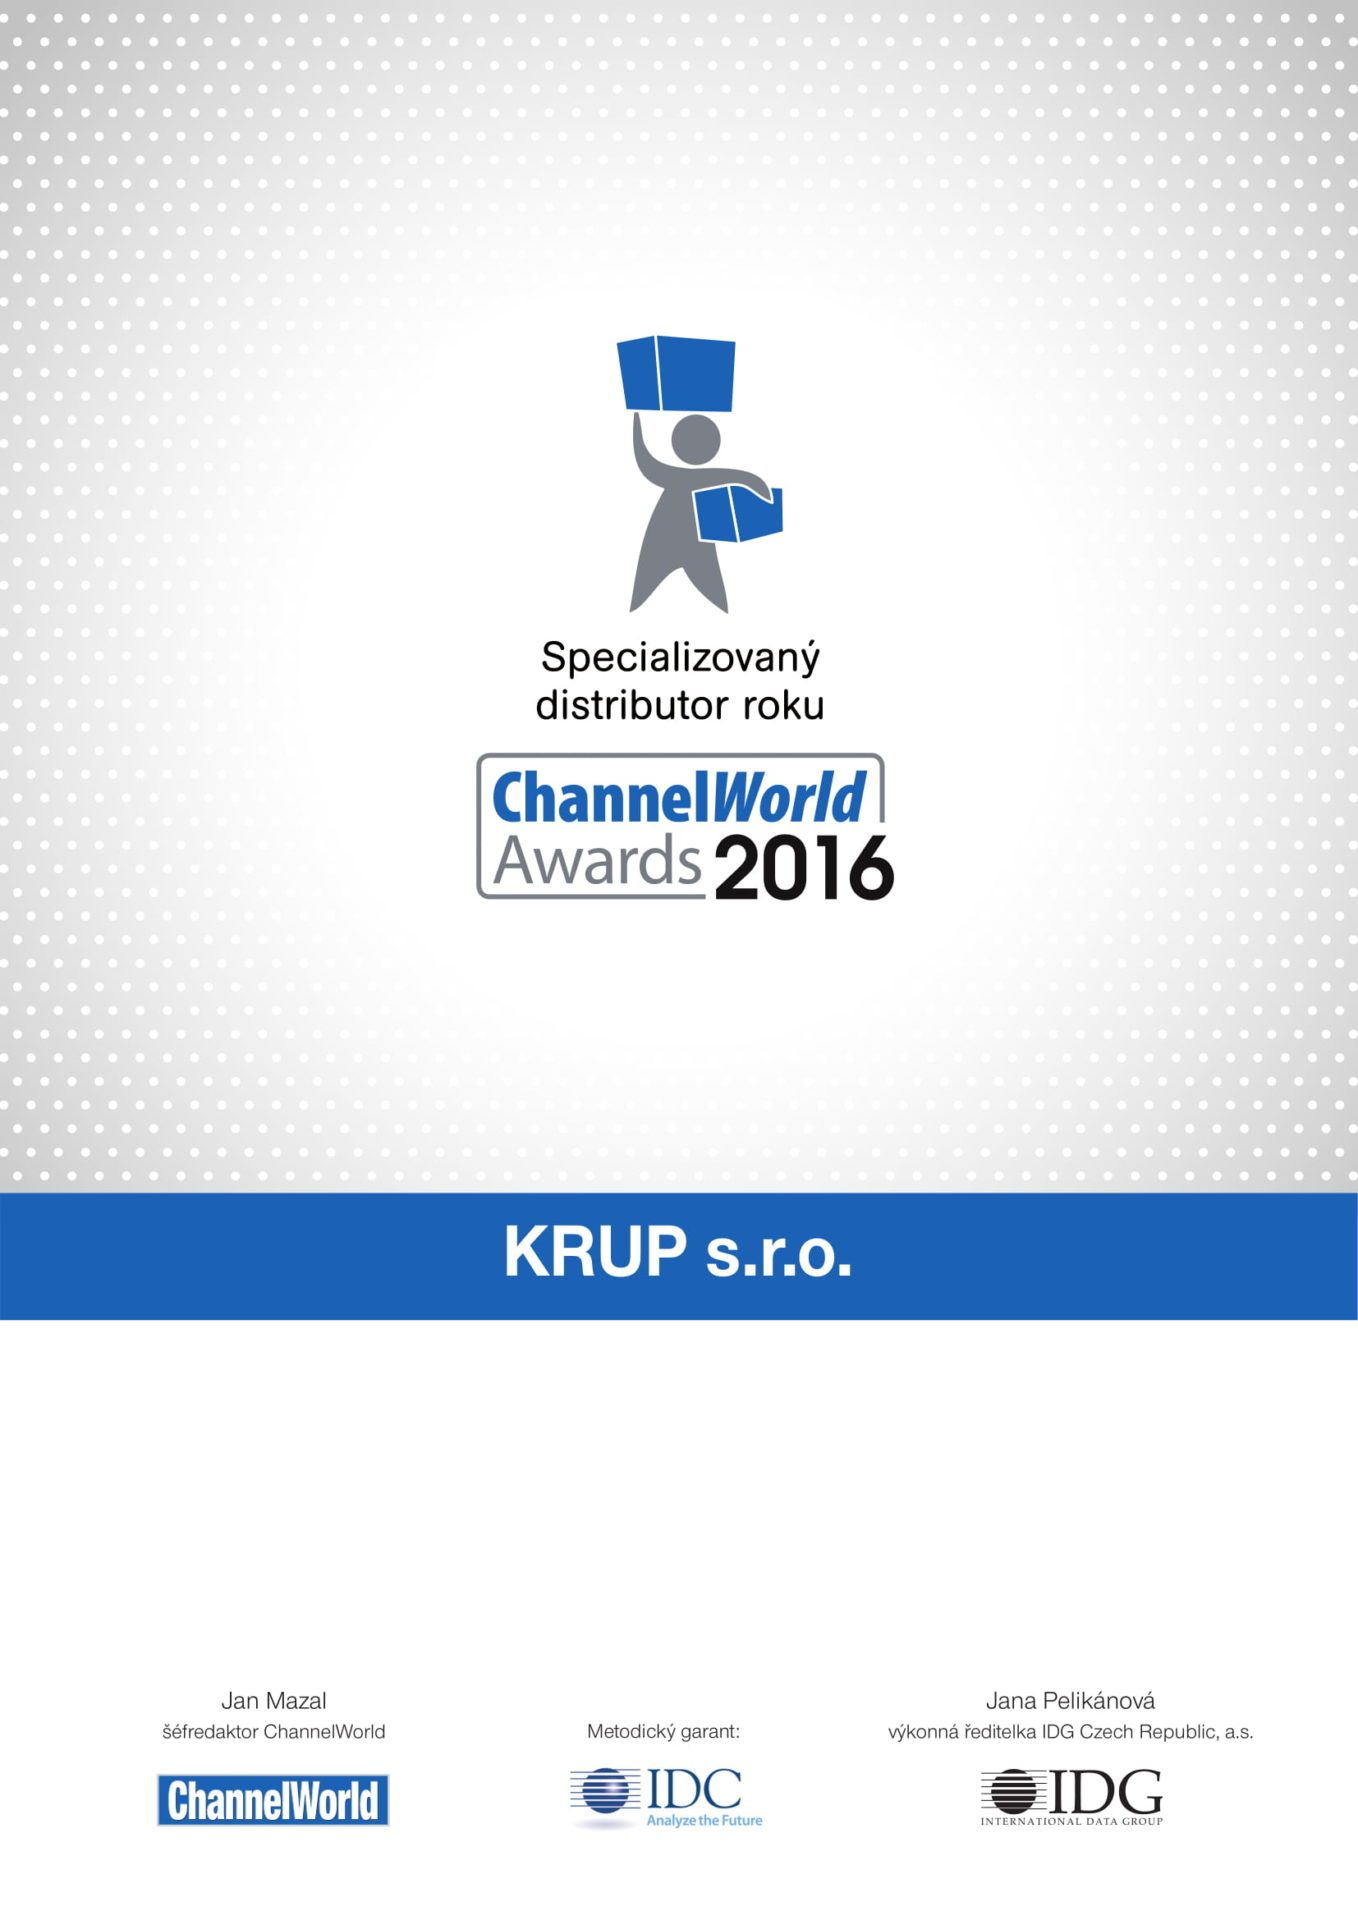 ChannelWord 2016 first place